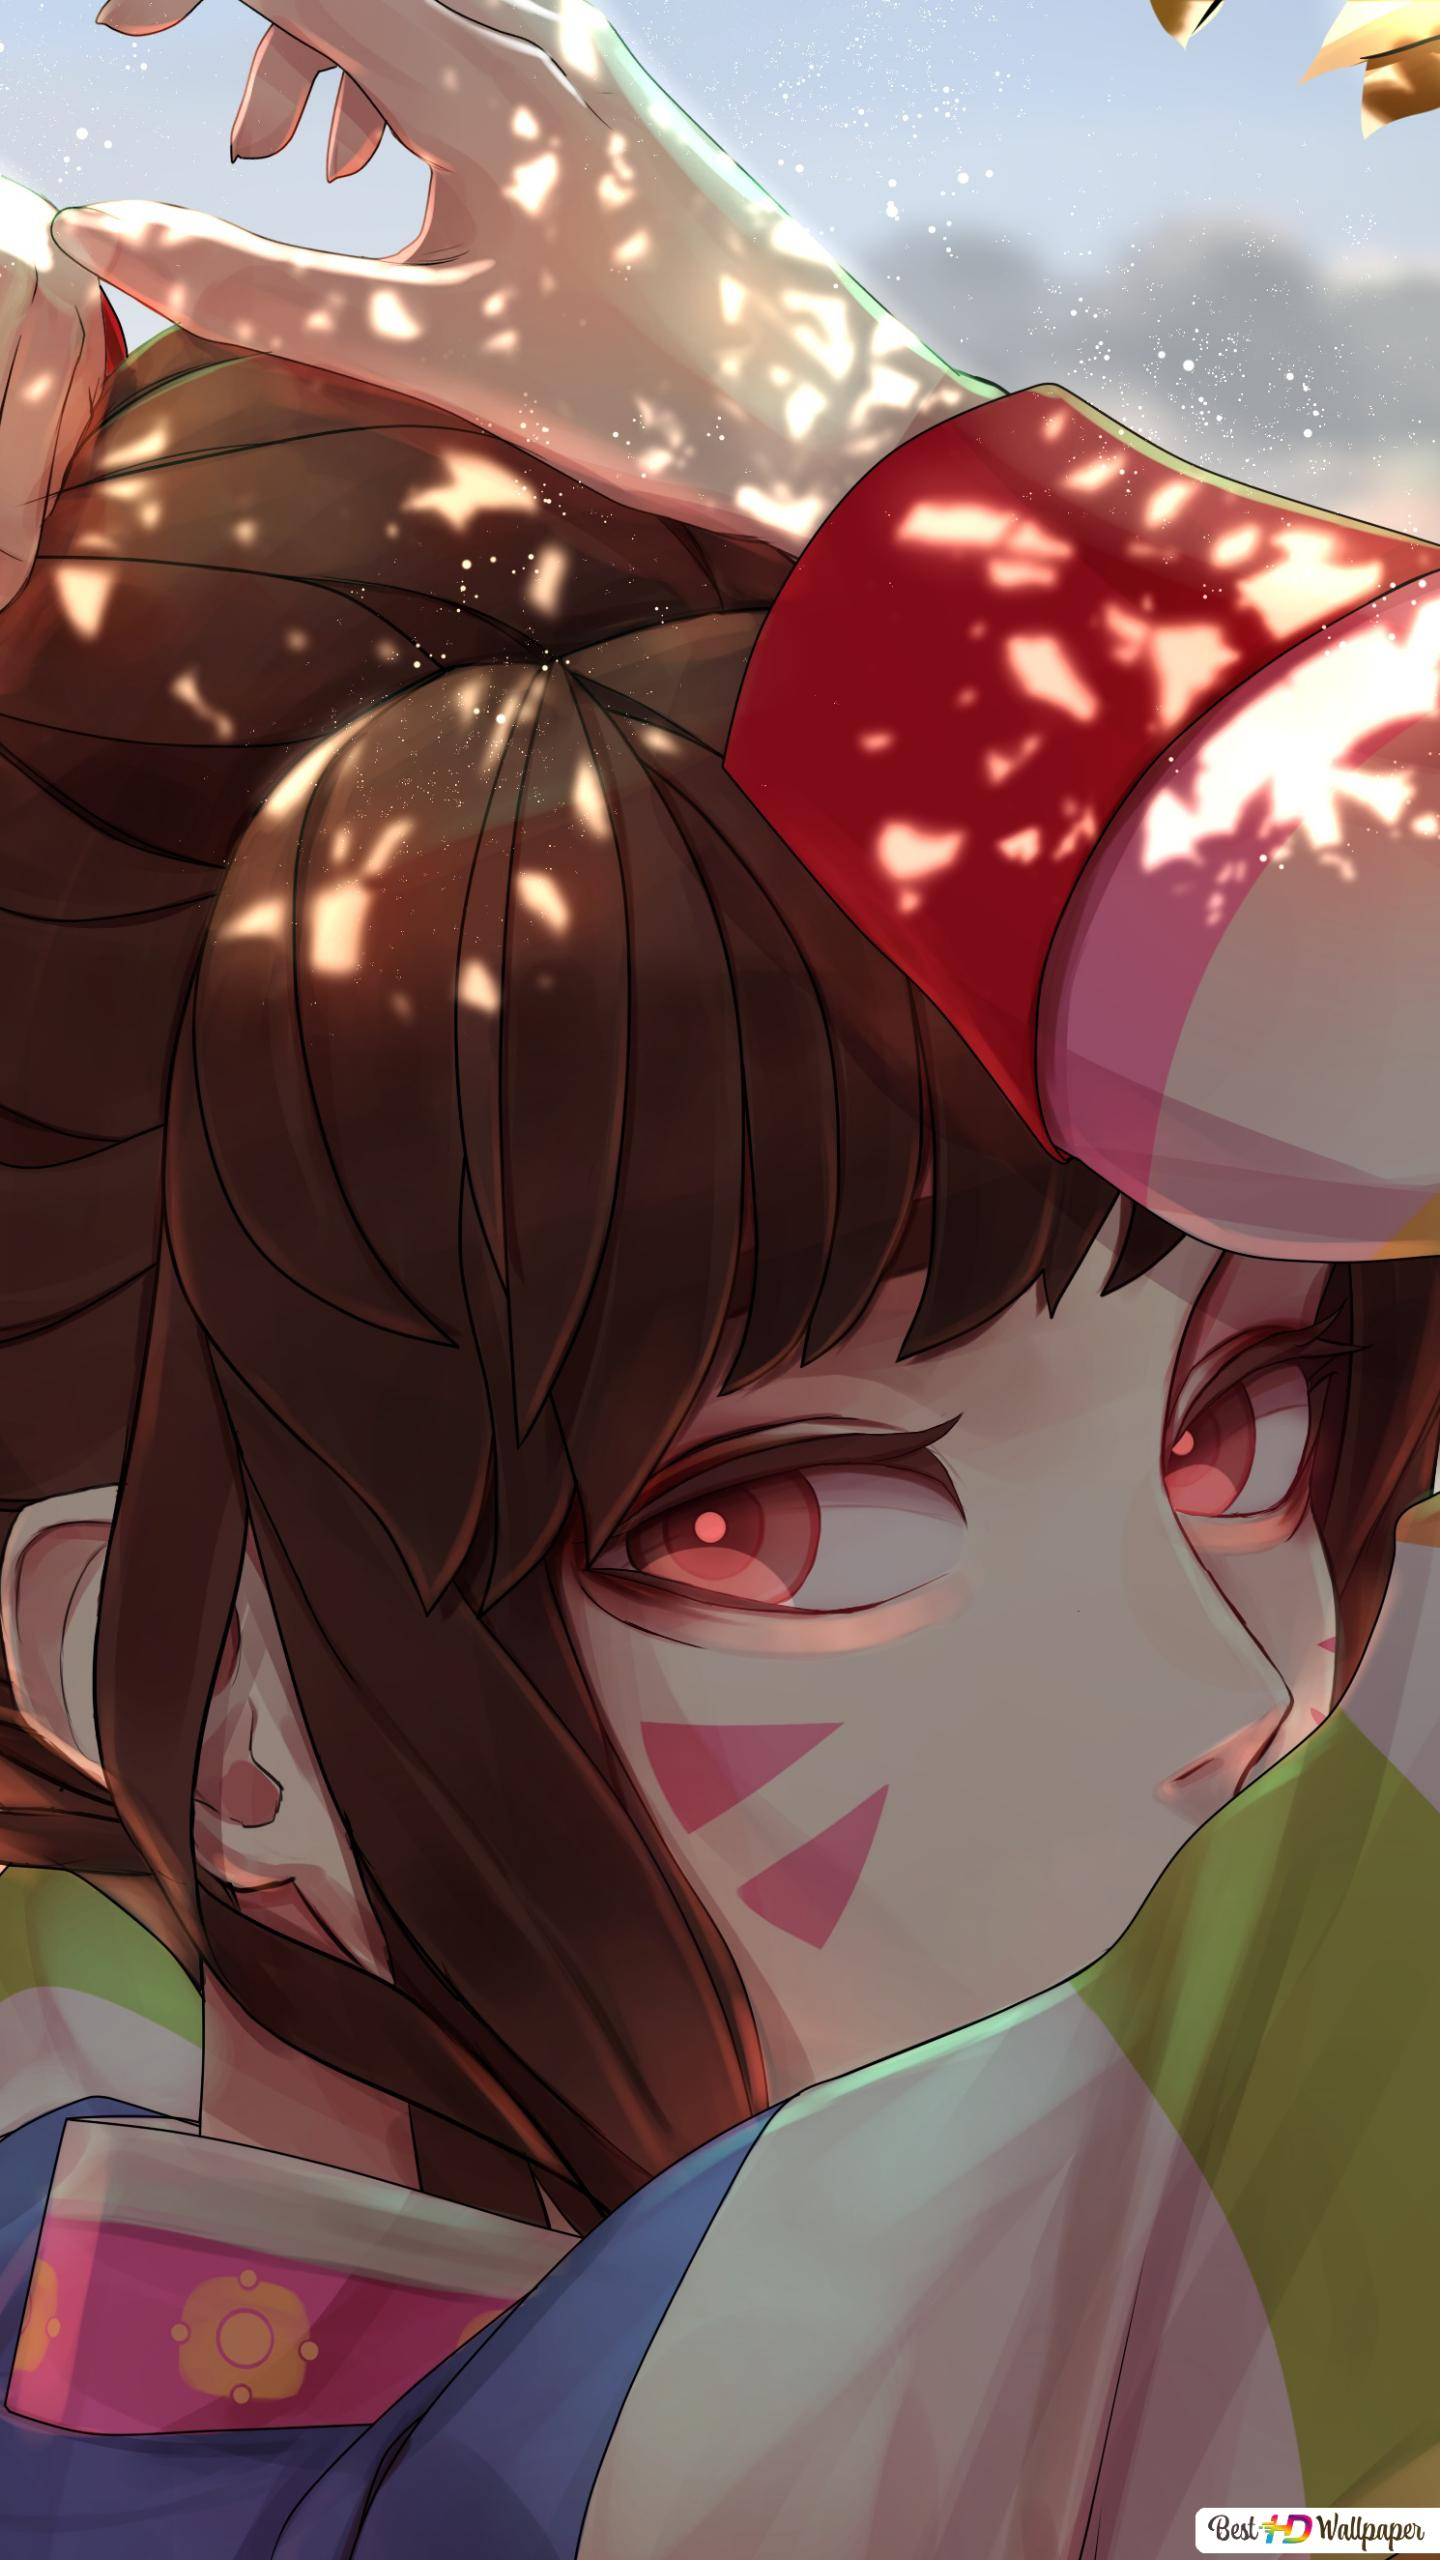 Overwatch (Kawaii Anime Girl - D.Va) HD wallpaper download